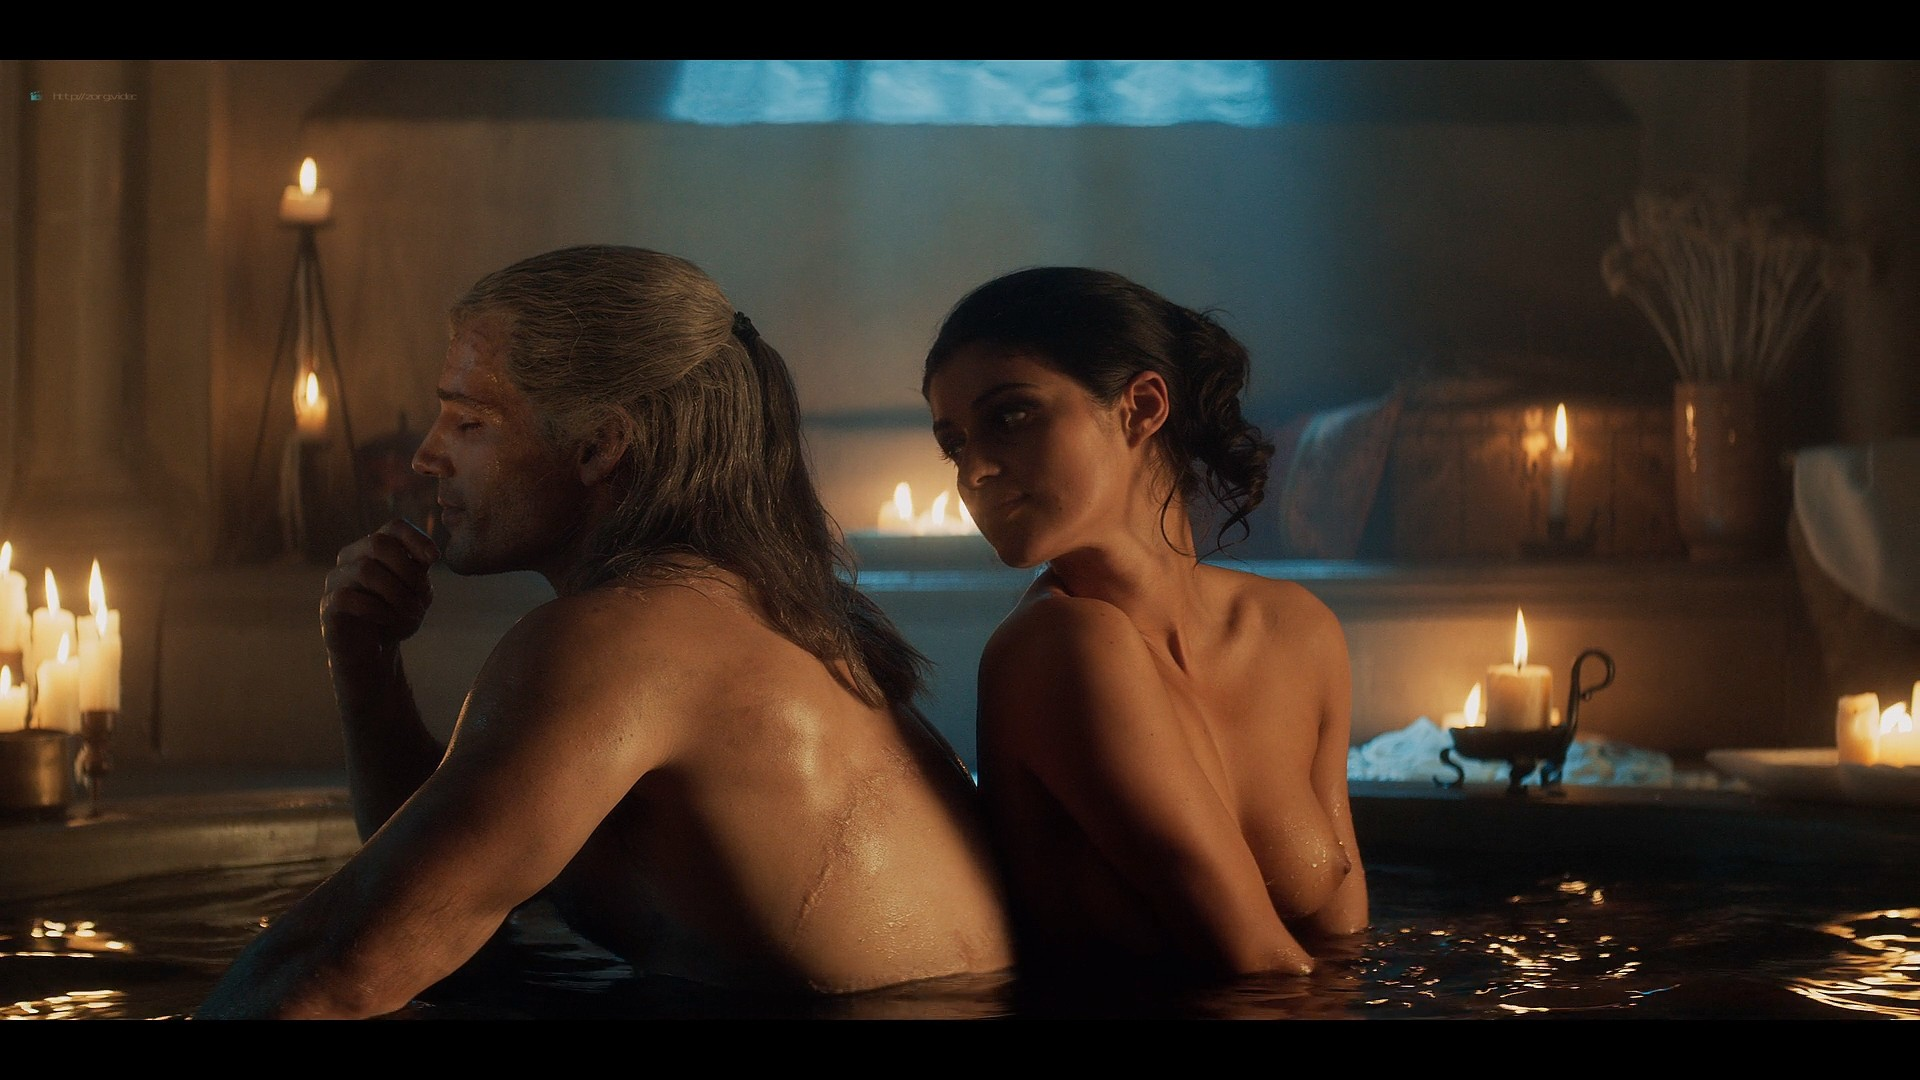 Anya Chalotra nude others nude too - The Witcher (2019) s1e5-6 HD 1080p WEB (13)